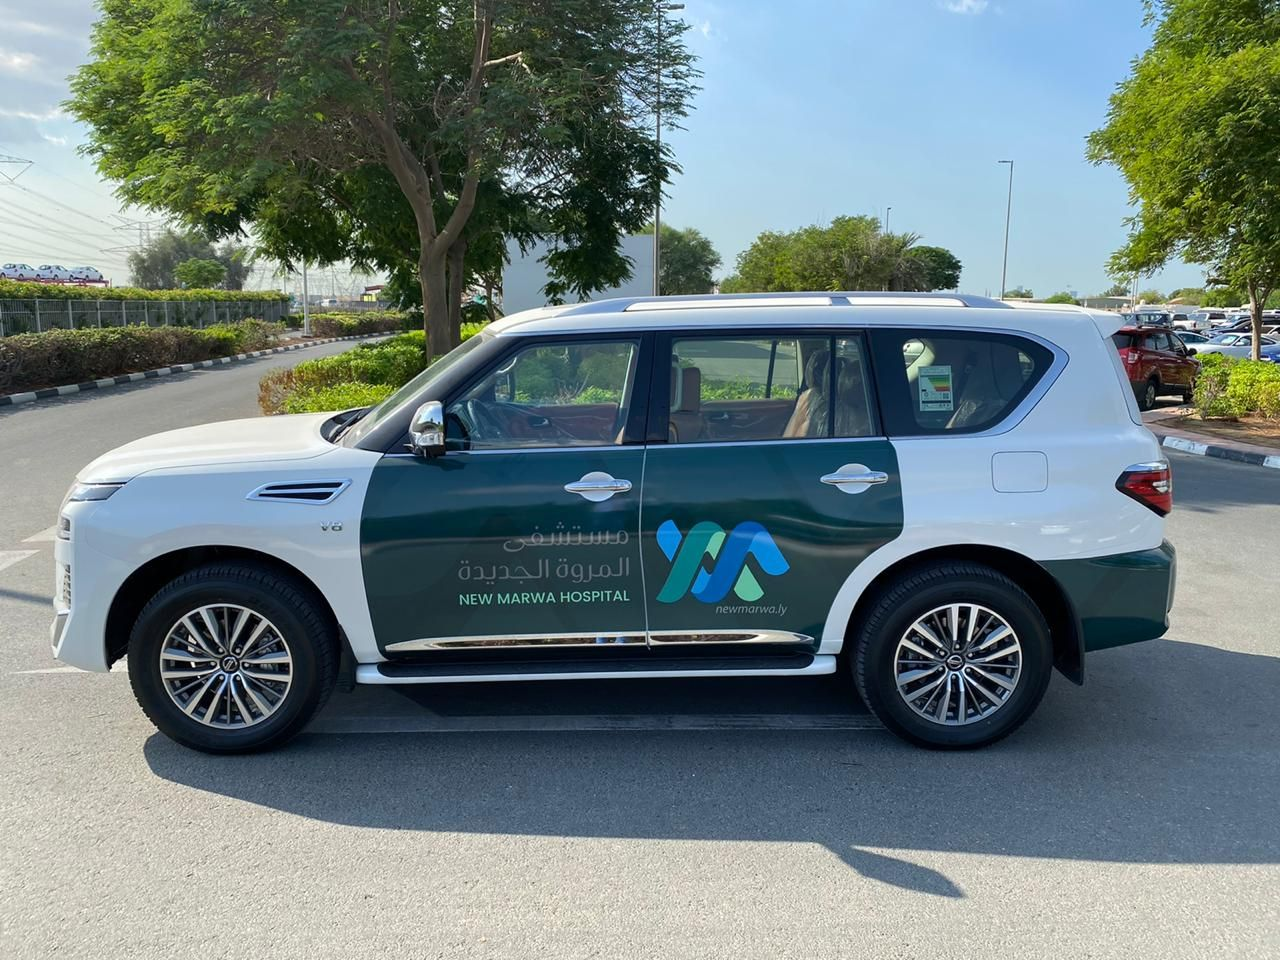 Vehicle Branding Car Stickers Bus Wrapping Vehicle Advertisement In Dubai Vinyl Wrap Car Vehicles Truck Stickers [ 960 x 1280 Pixel ]